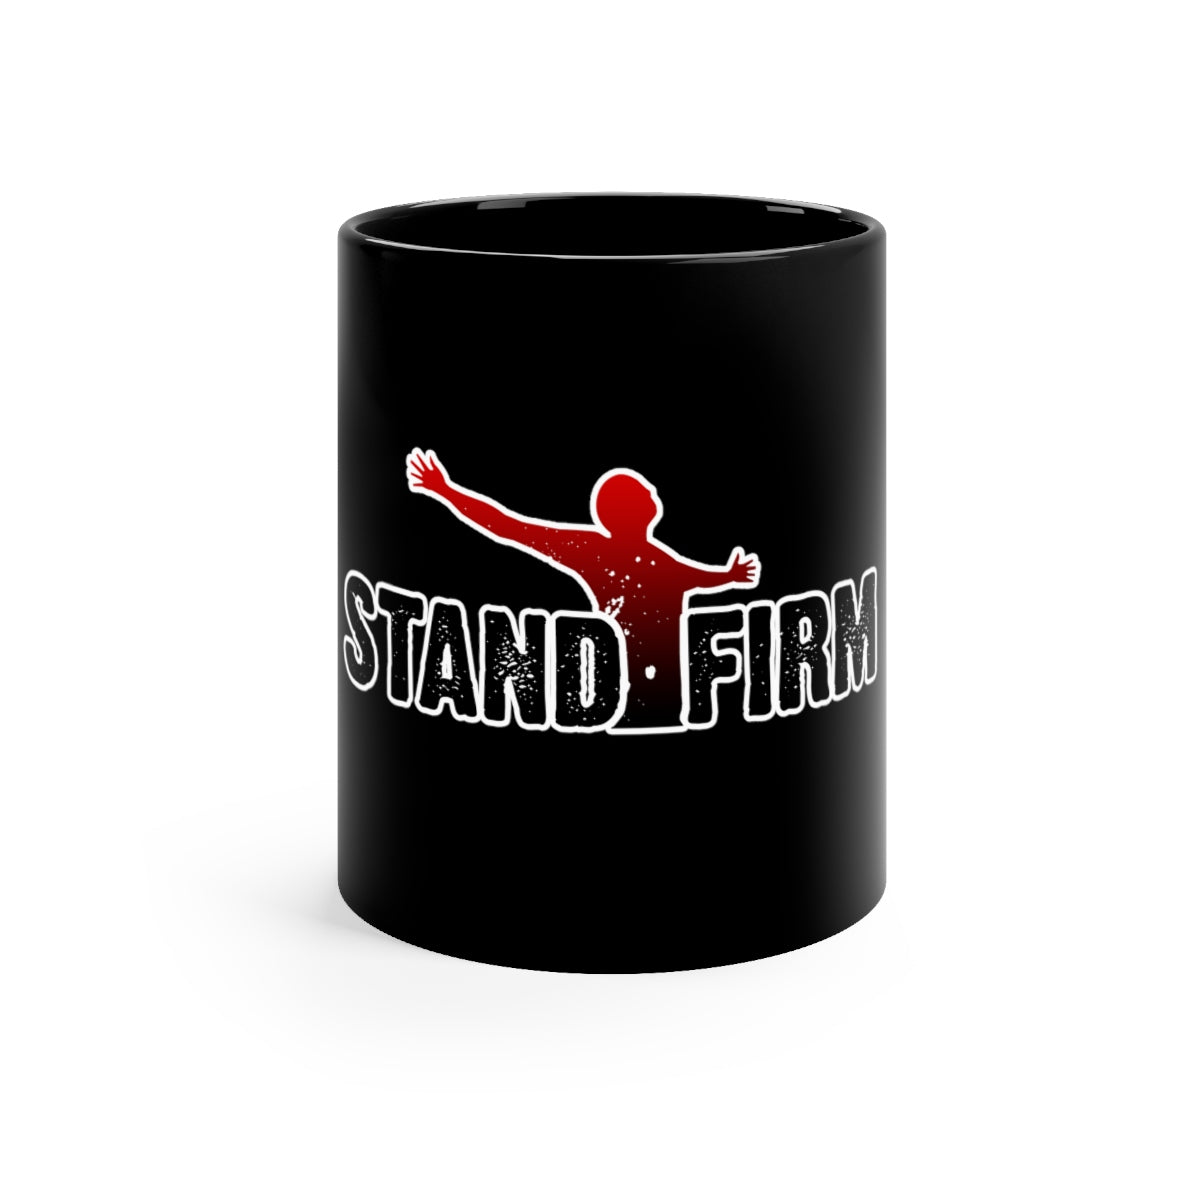 Stand Firm Black mug 11oz - Stand Firm Series 01